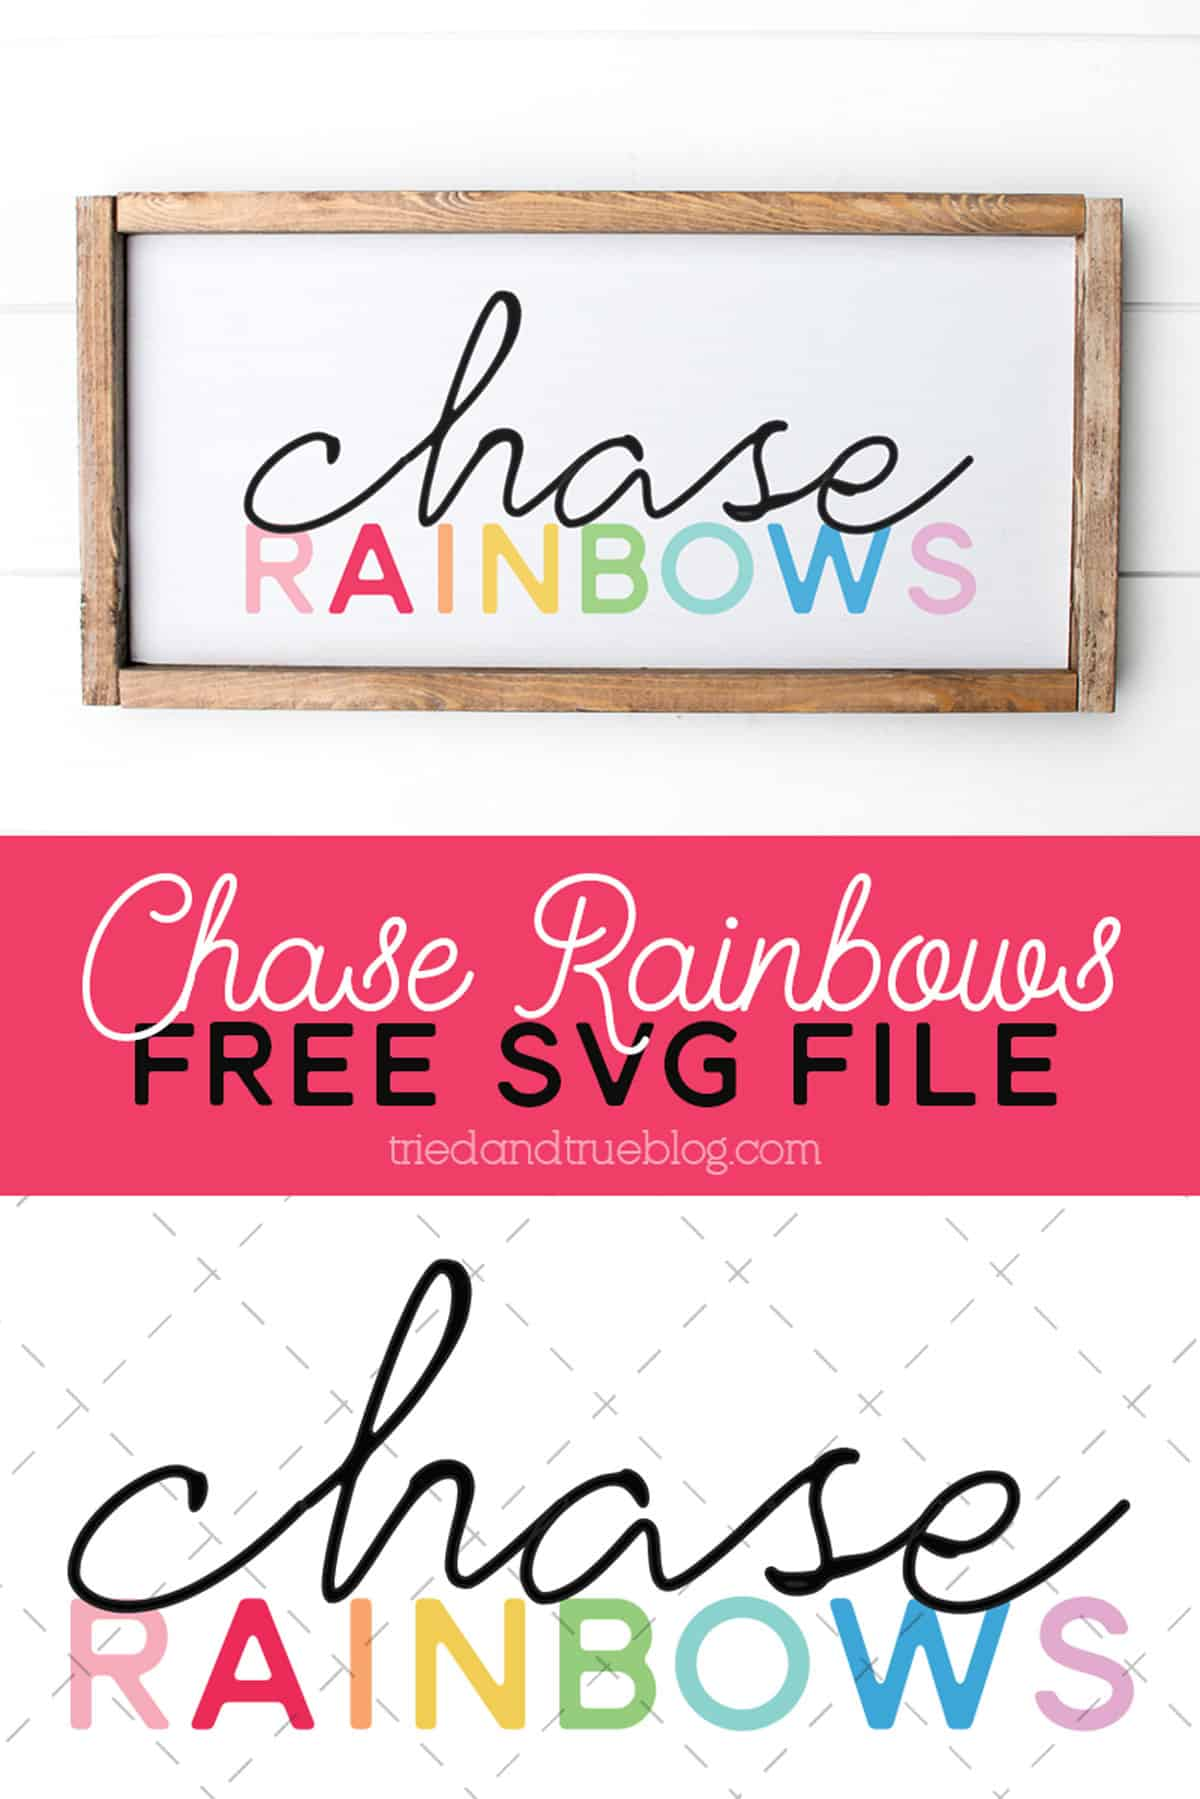 Chase Rainbows Free SVG File